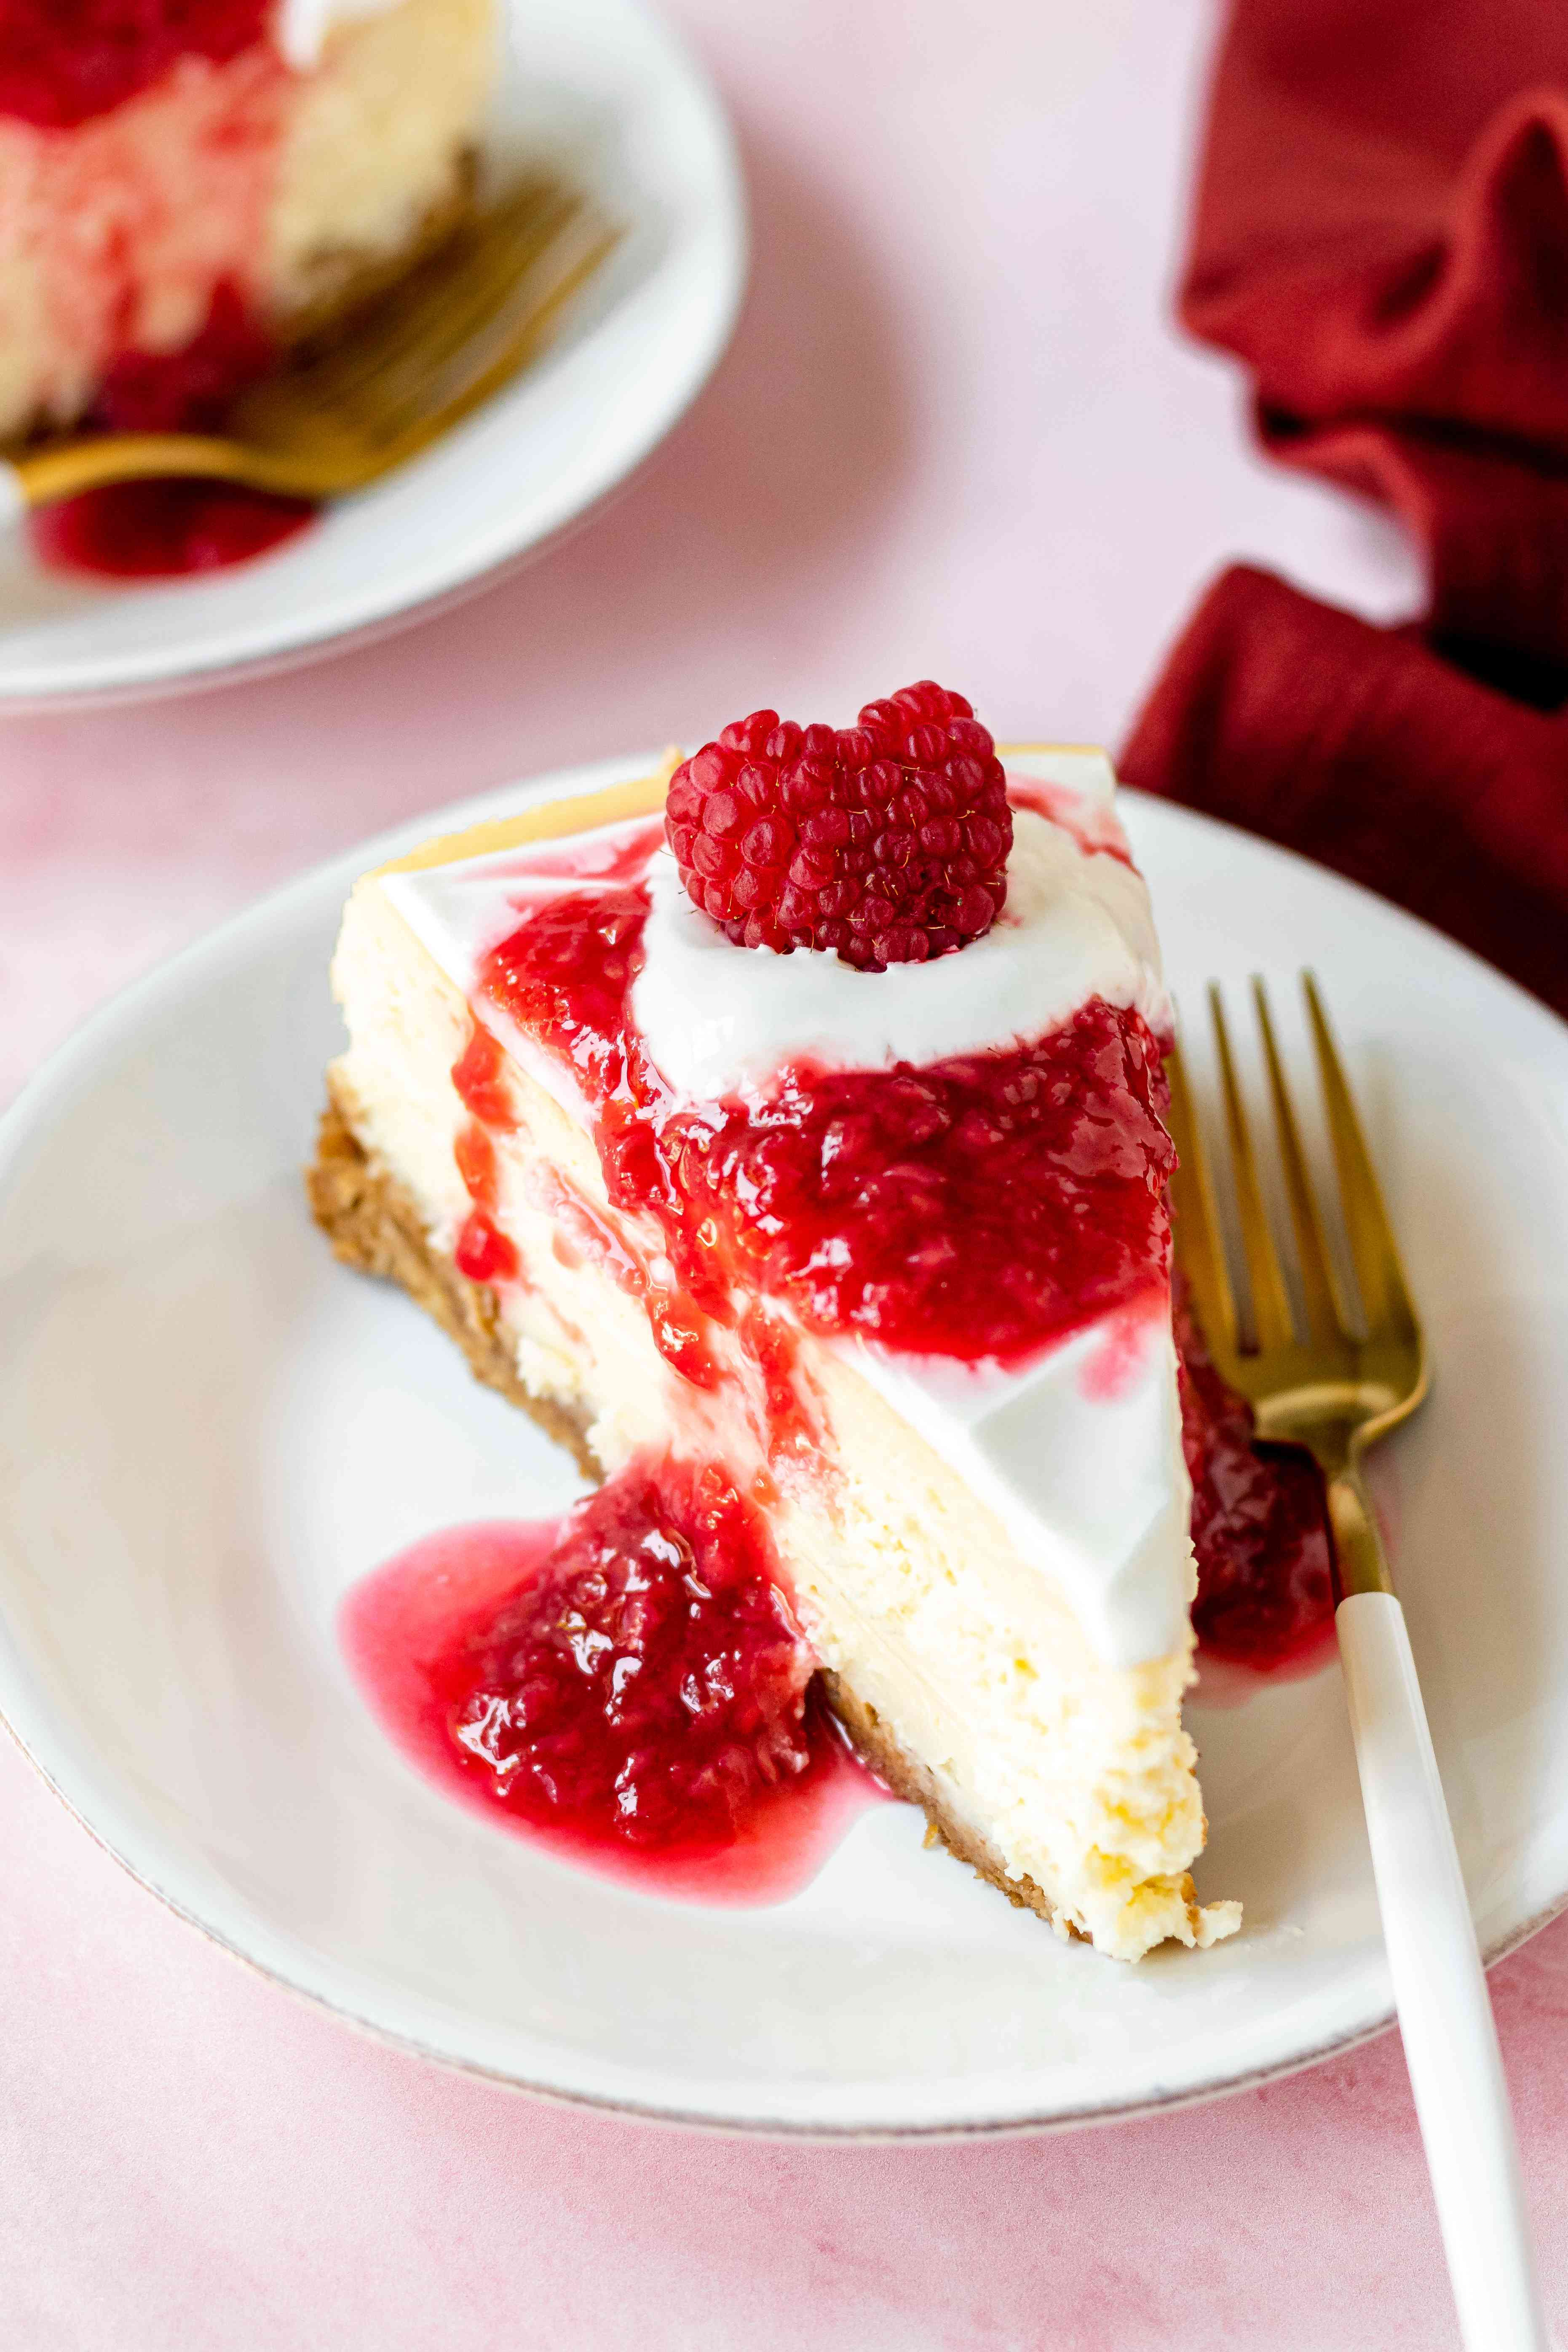 A slice of homemade cheesecake topped with raspberry sauce and on a plate with a fork.